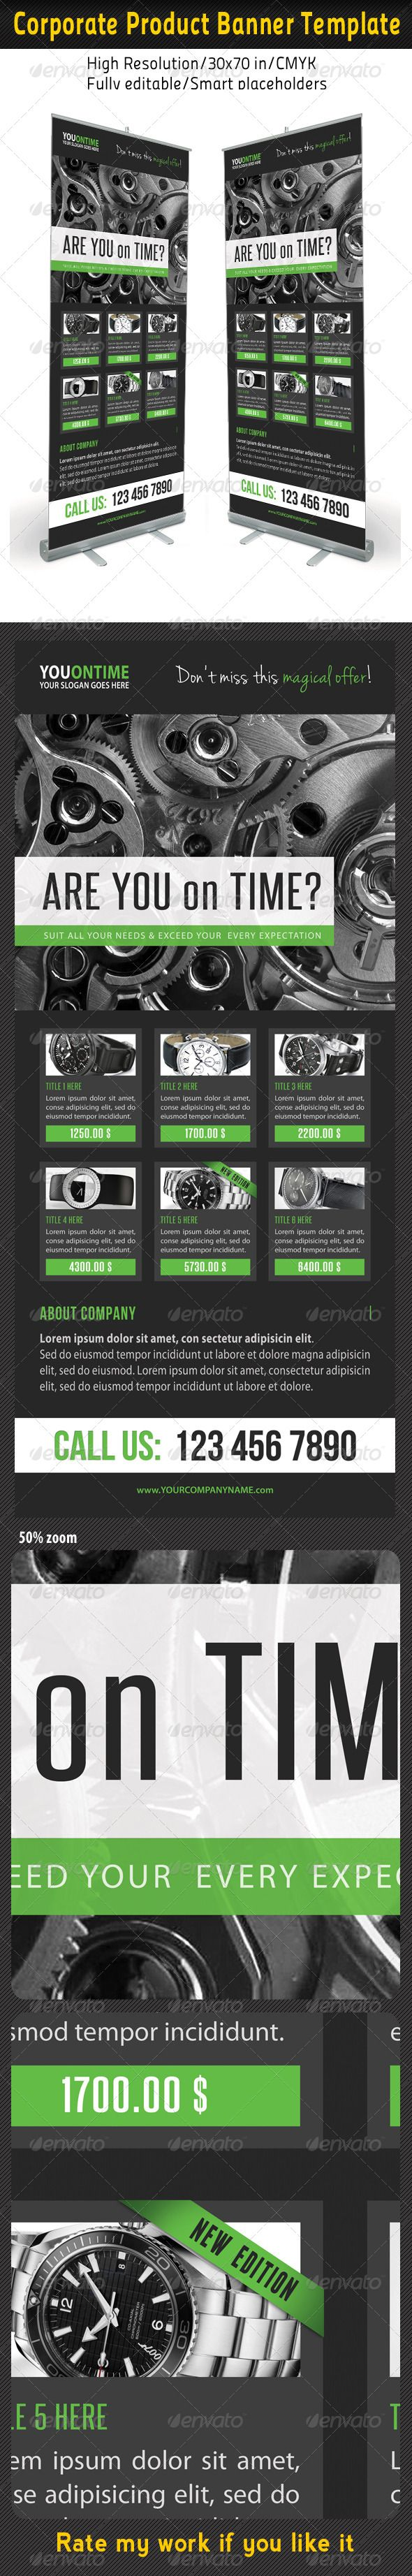 High impact Roll-Up Banner Template Layout, perfect for business advertisement o...